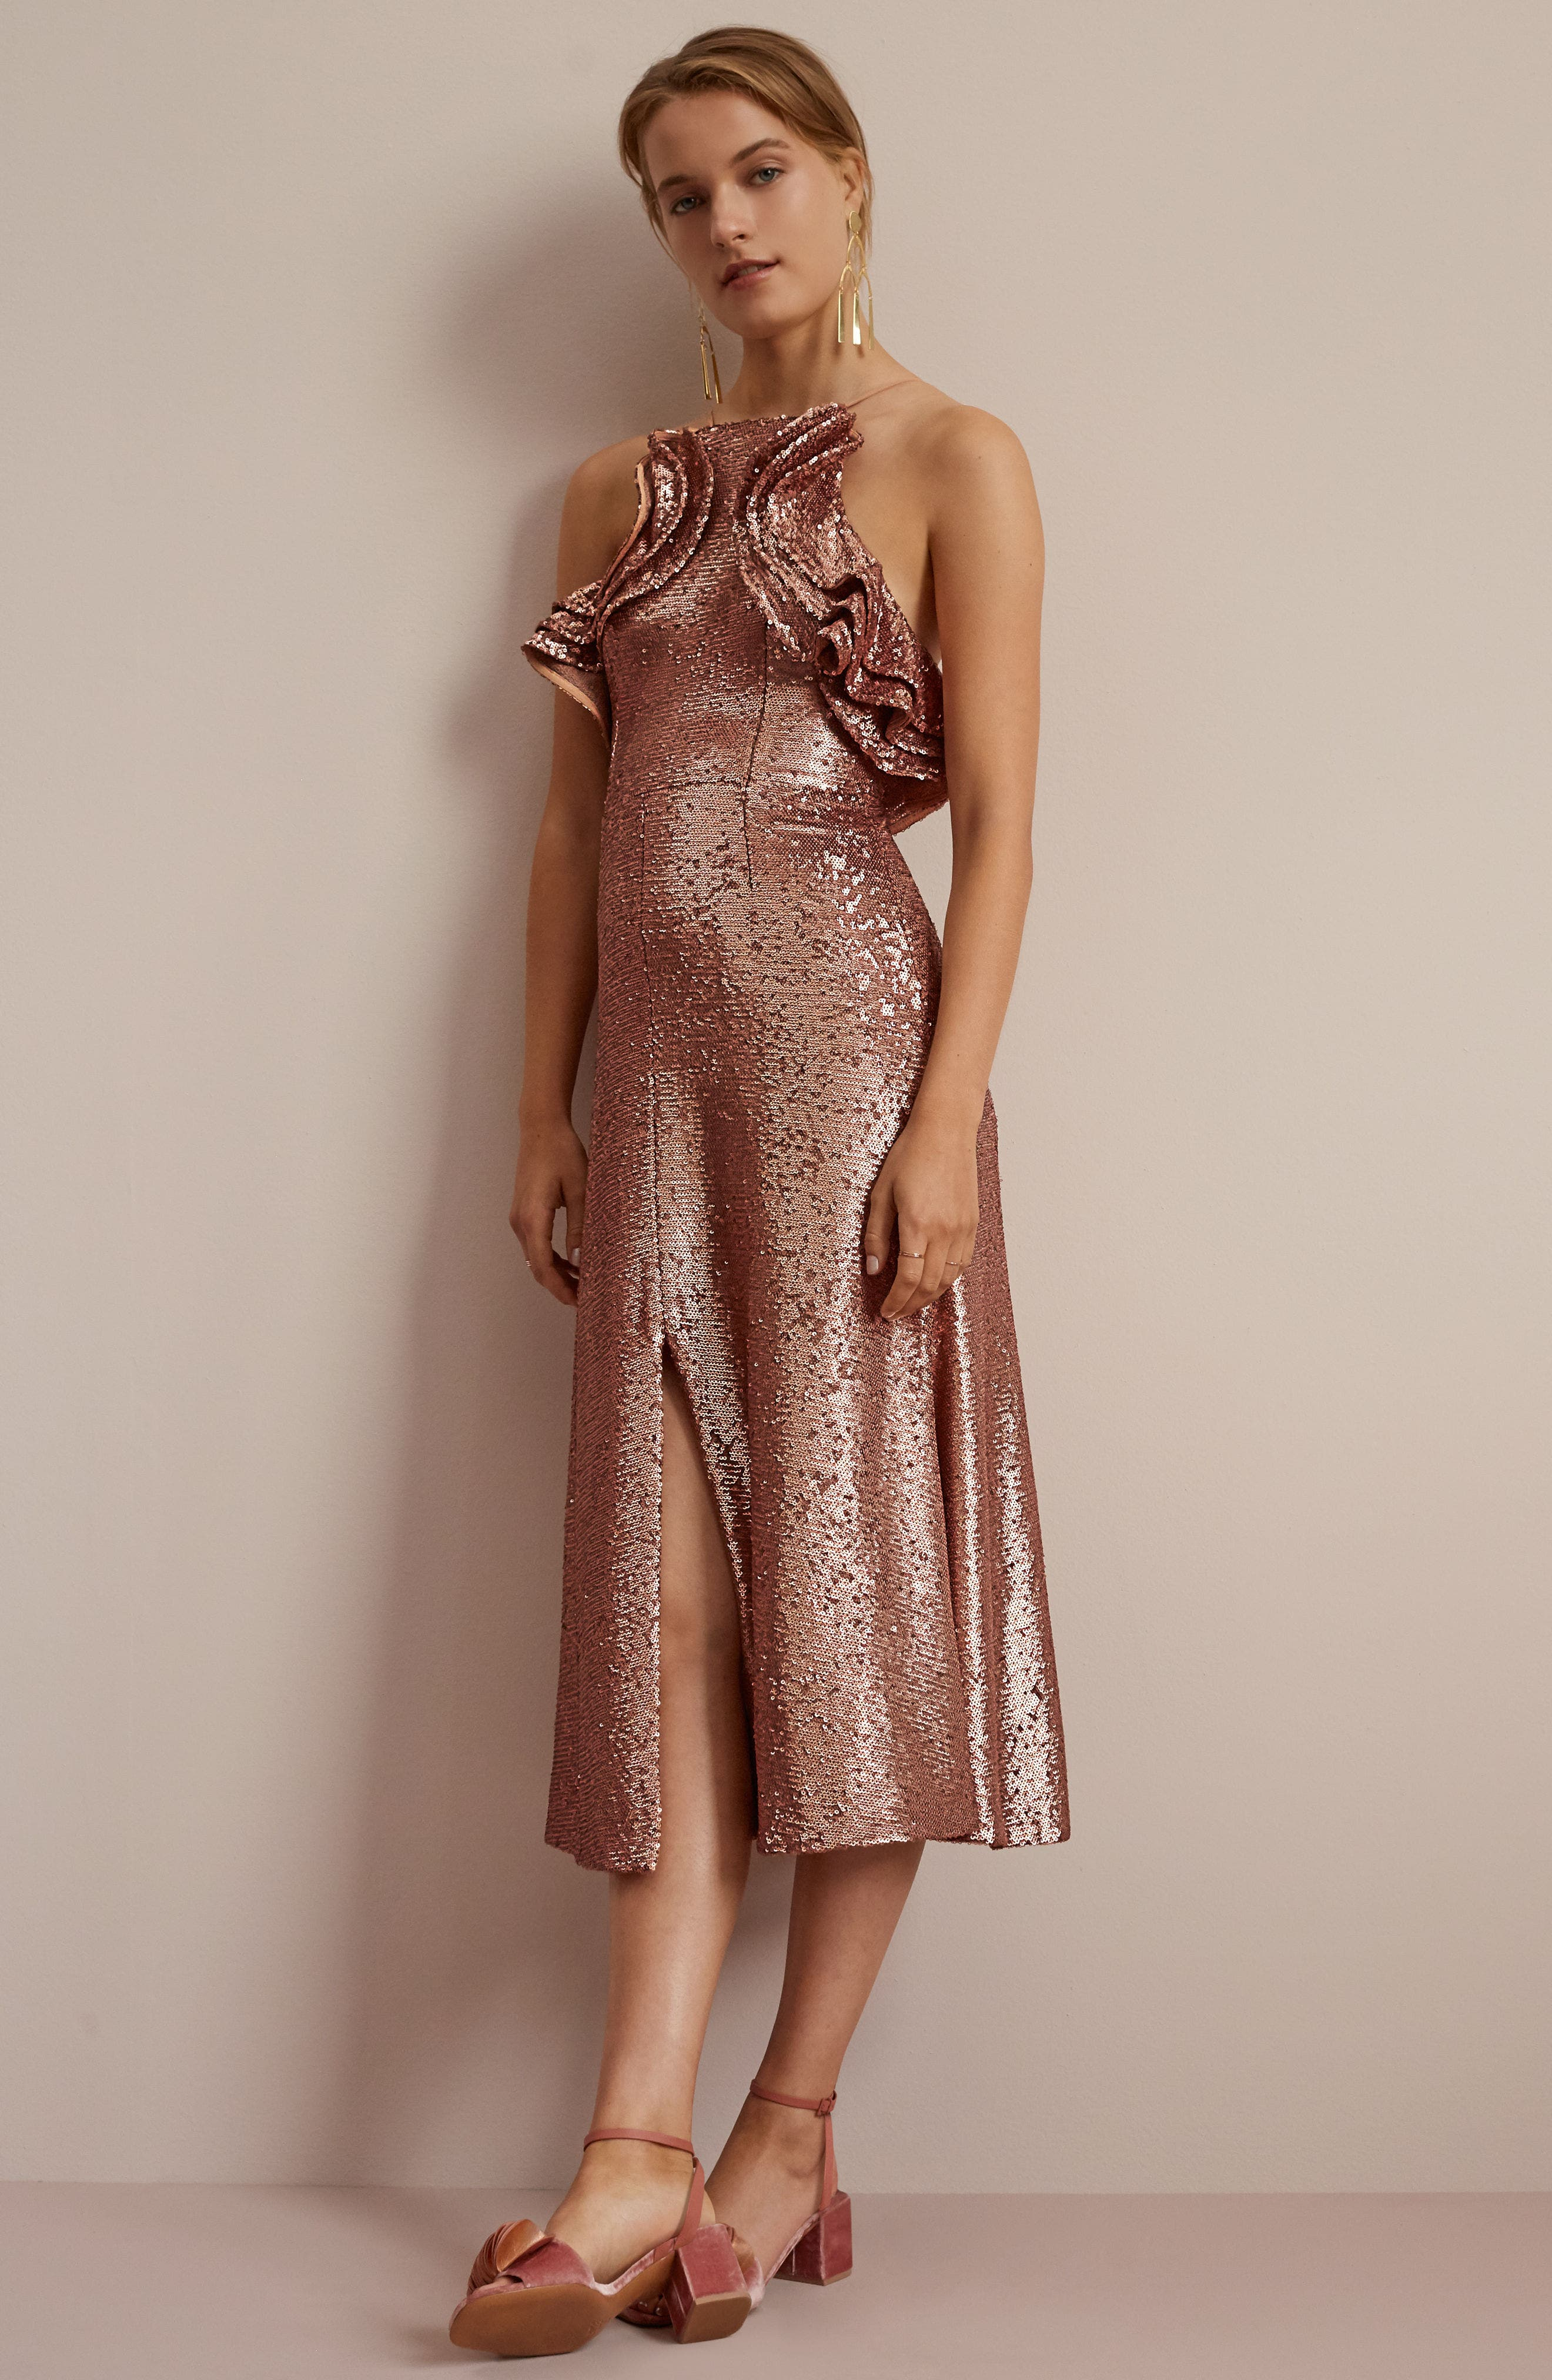 Illuminated Sequin Ruffle Midi Dress,                             Alternate thumbnail 8, color,                             001